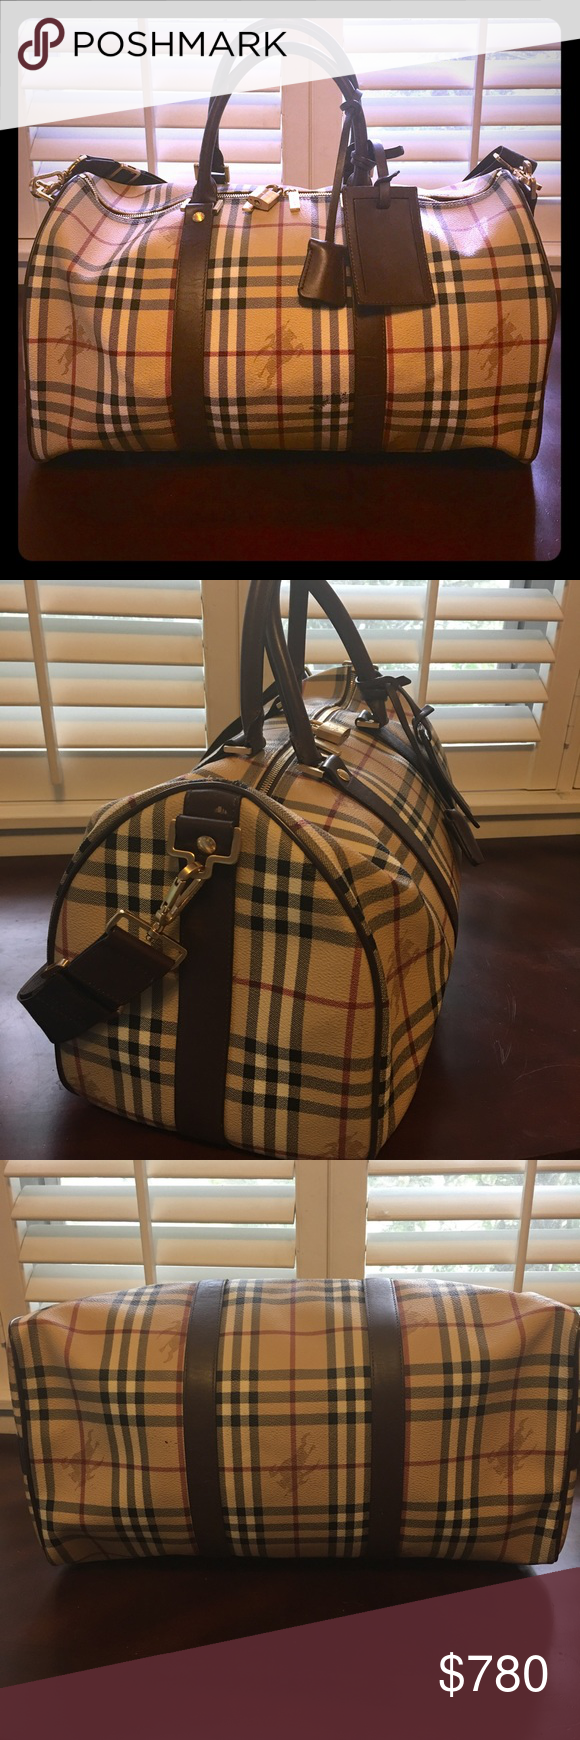 139545caa9fc Burberry Haymarket duffle bag weekender plaid Burberry Haymarket duffle bag  100% authentic weekender bag. Pre-owned great condition!